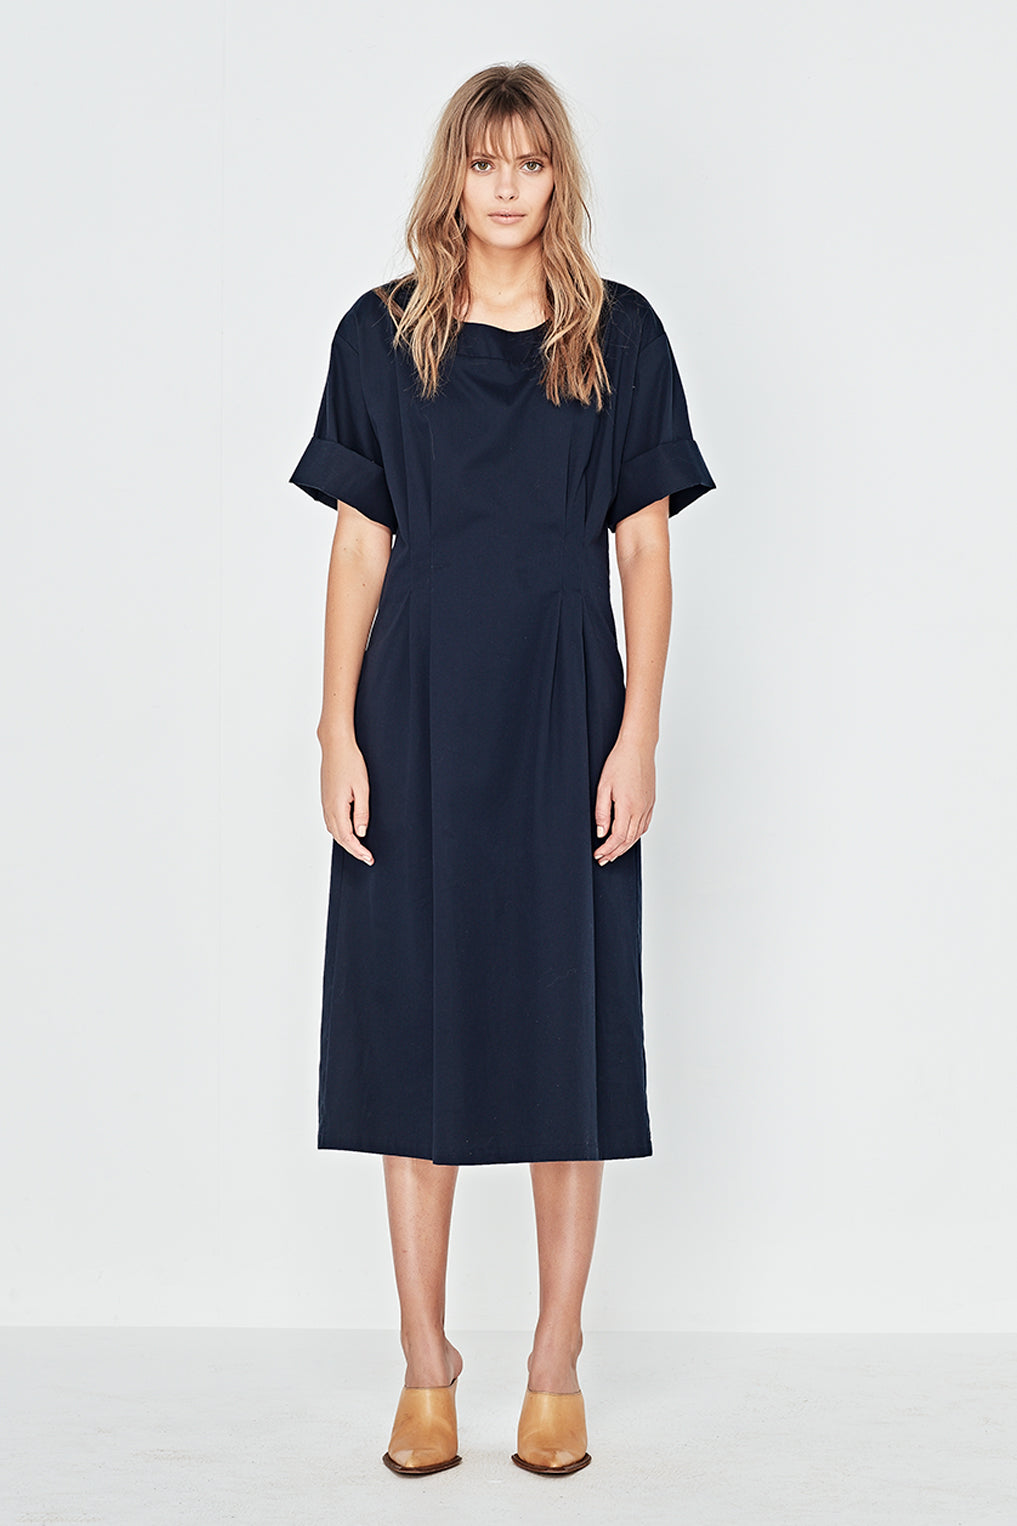 The Danube Dress in Navy